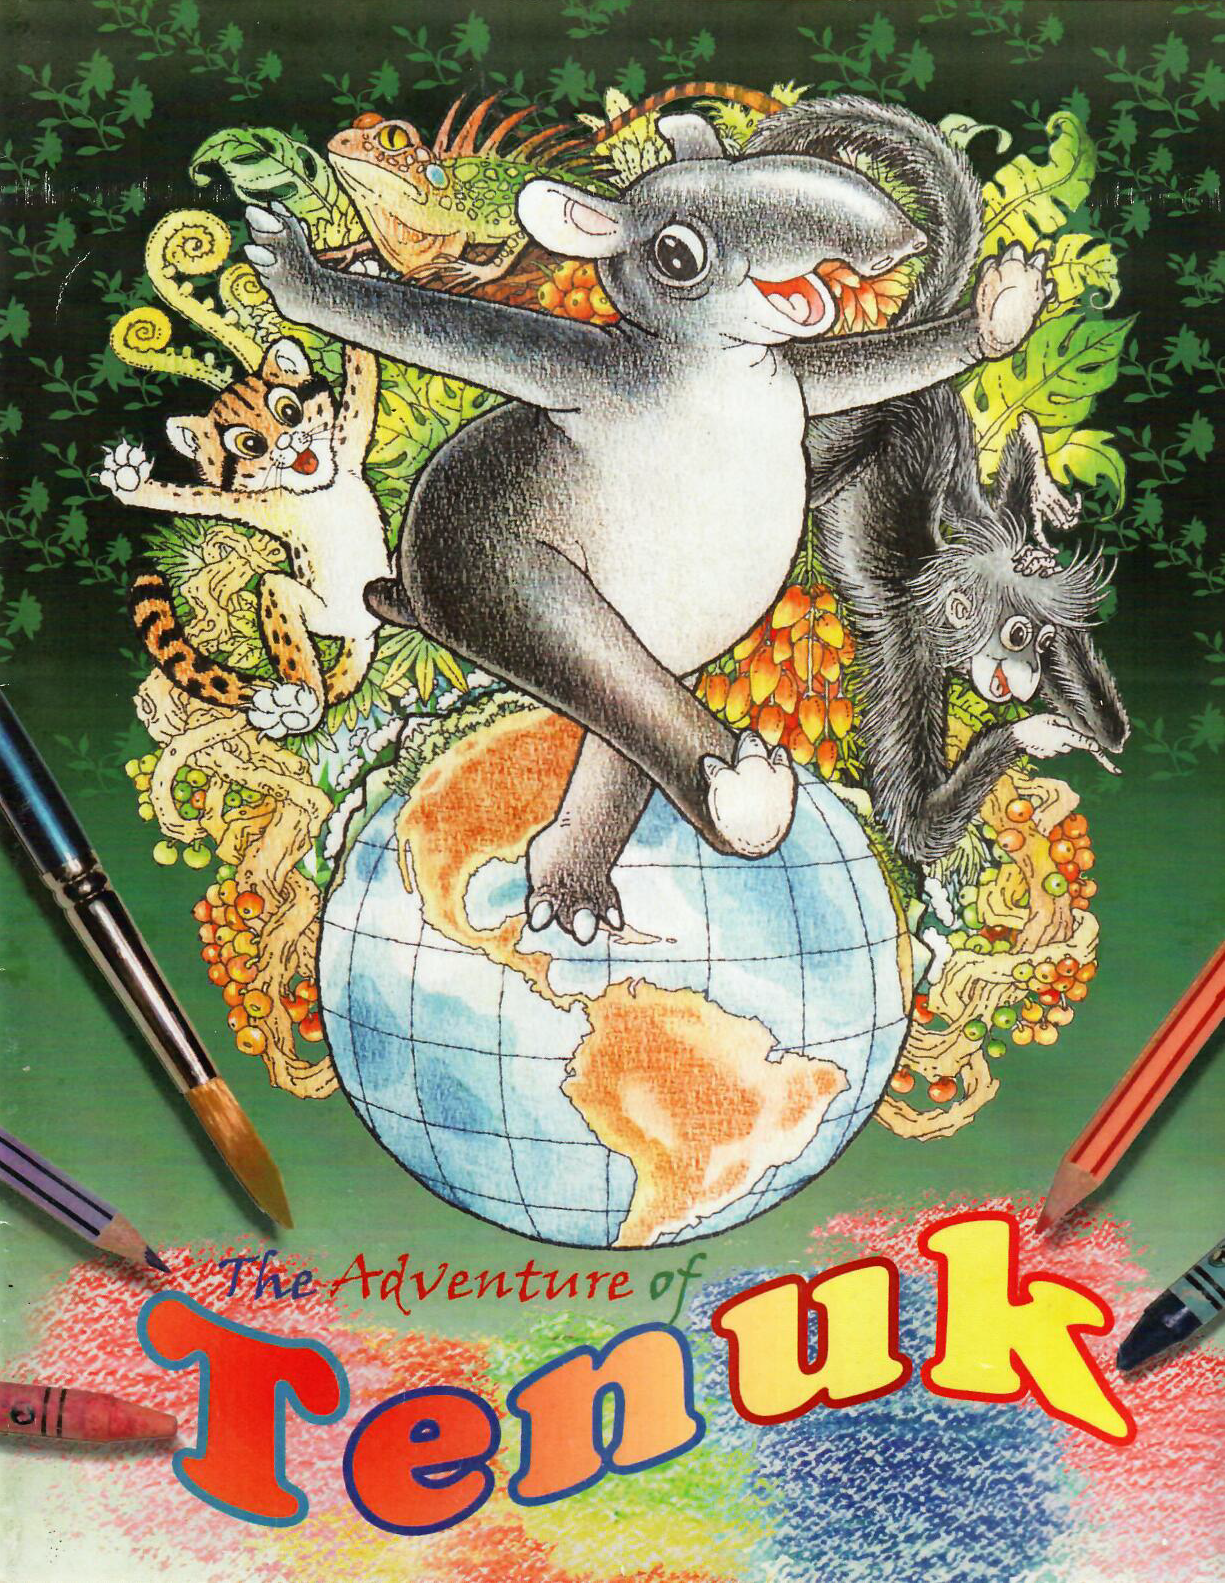 The Story Book Adventure Of Tenuk Duplicates As A Colouring It Has An Attractive Bright Coloured Cover With Brilliant Accurate And Compelling